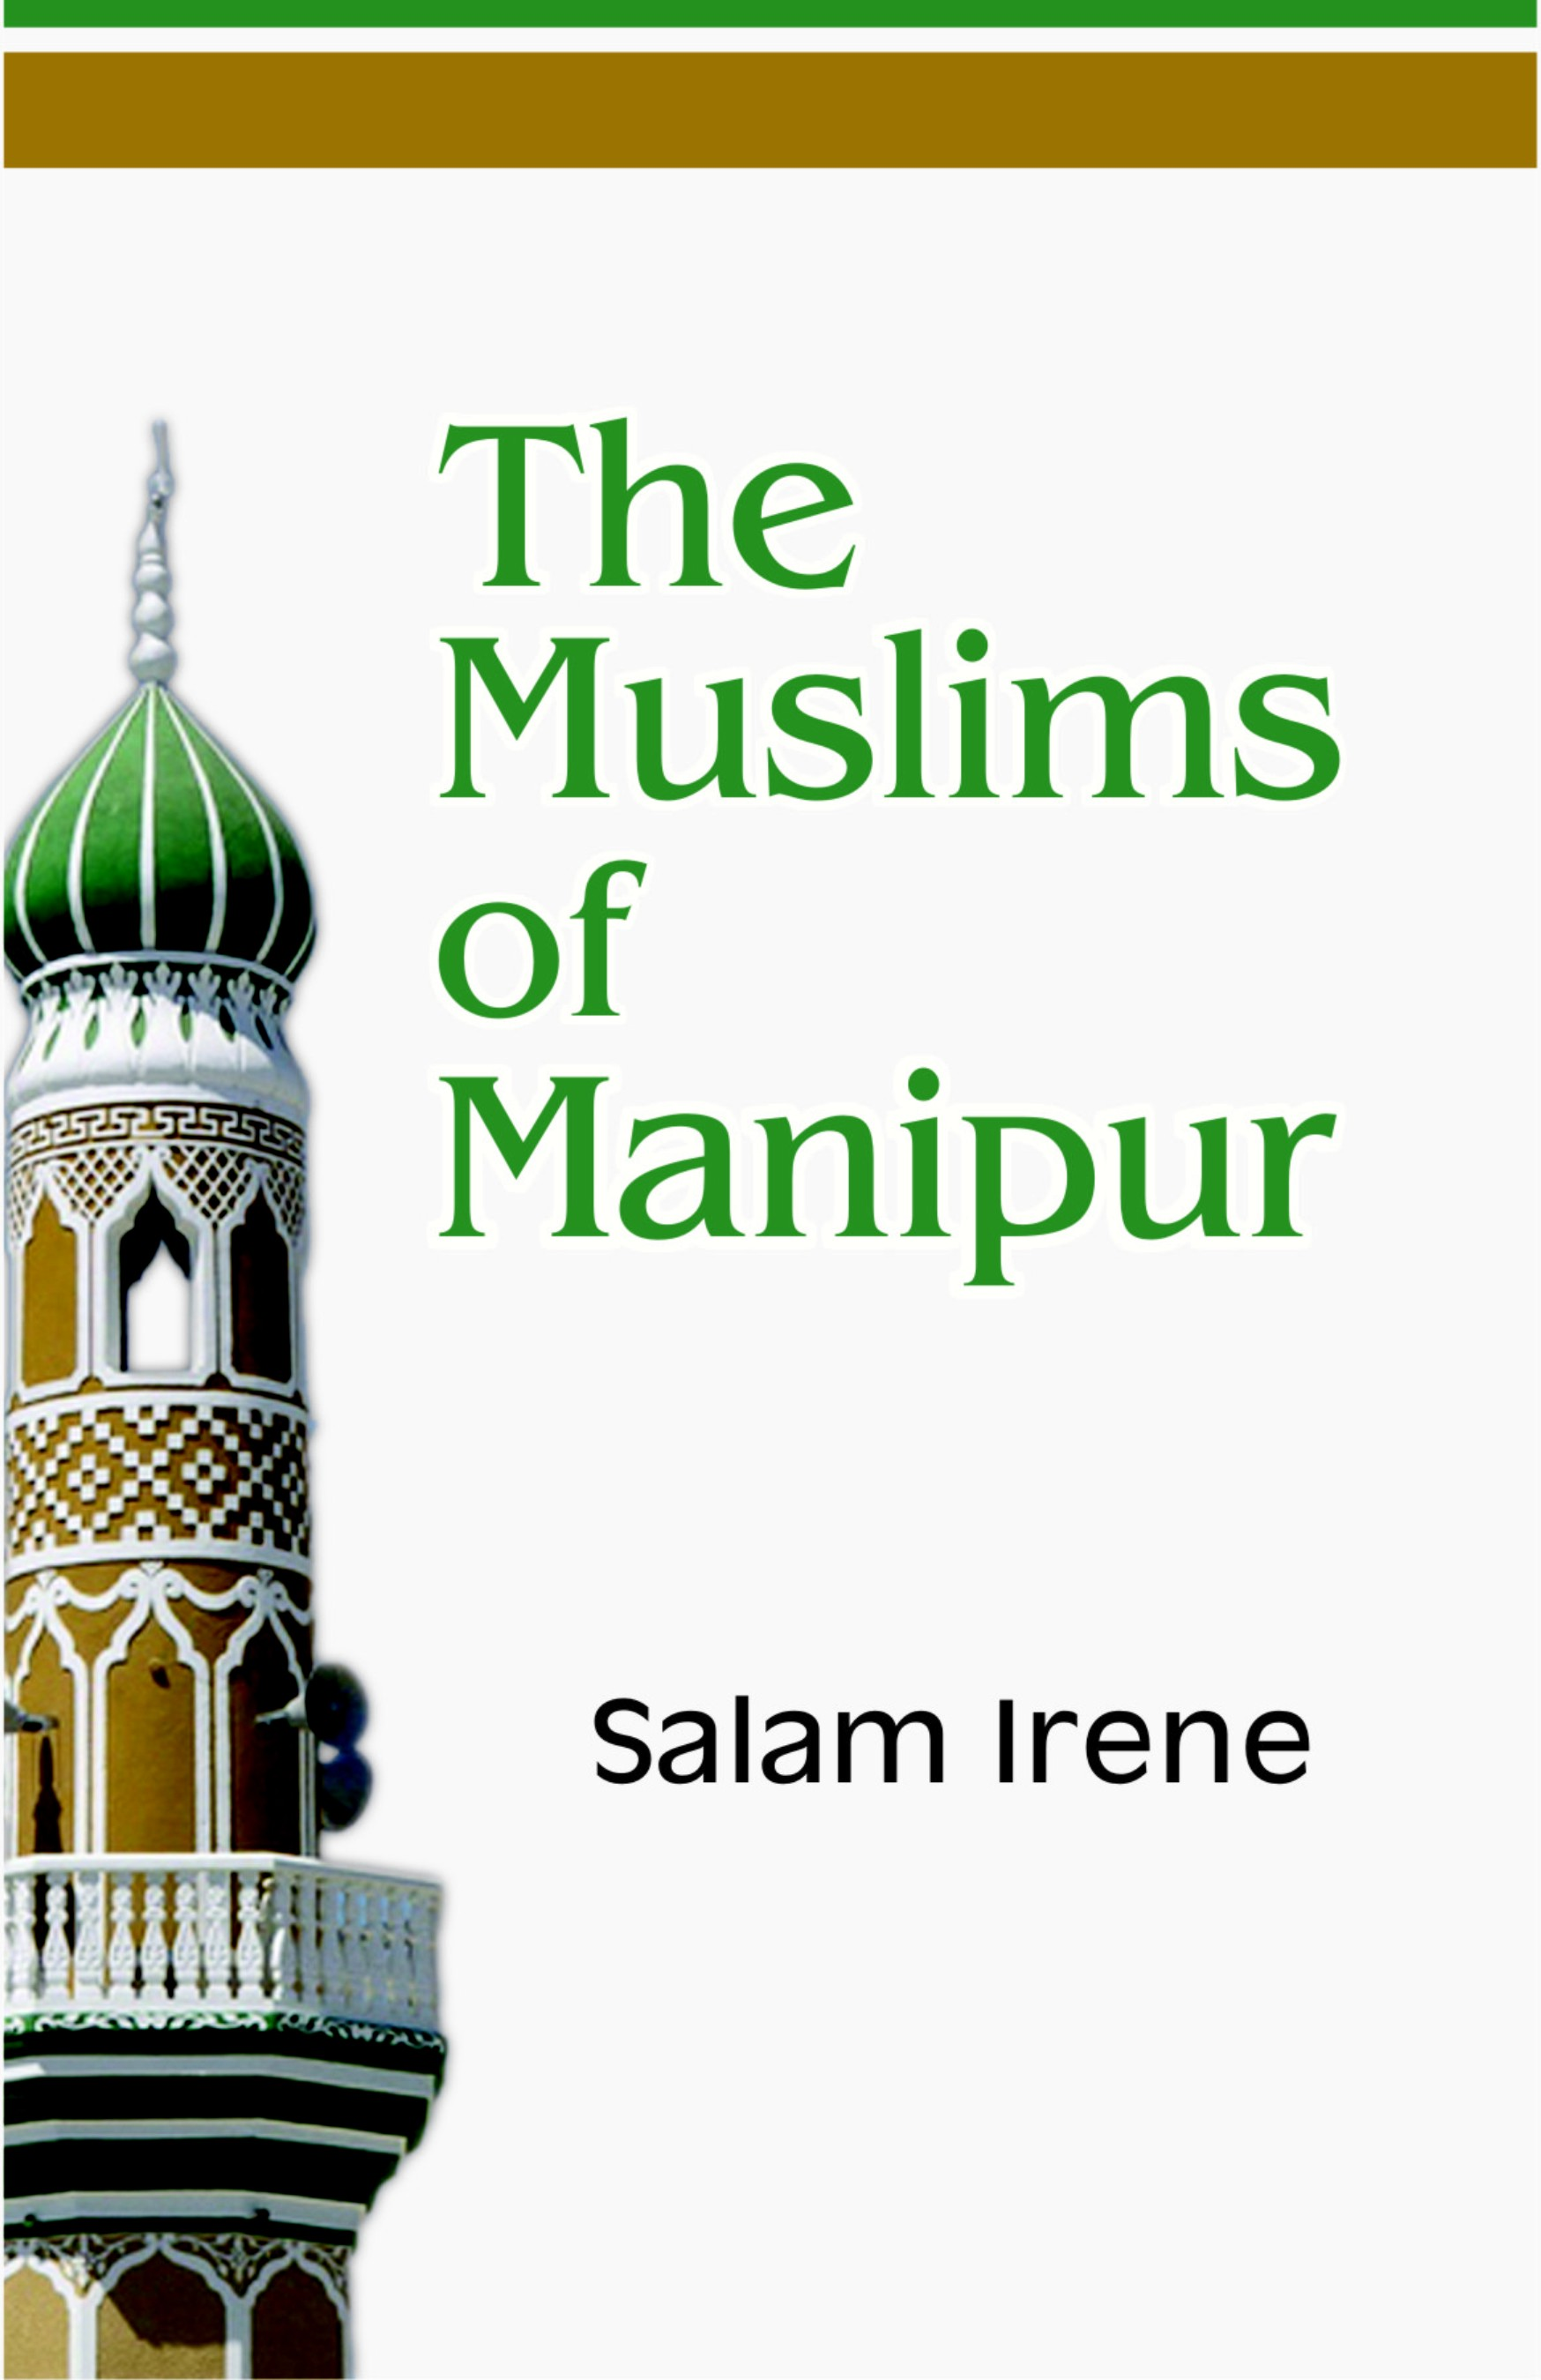 The Muslims of Manipur